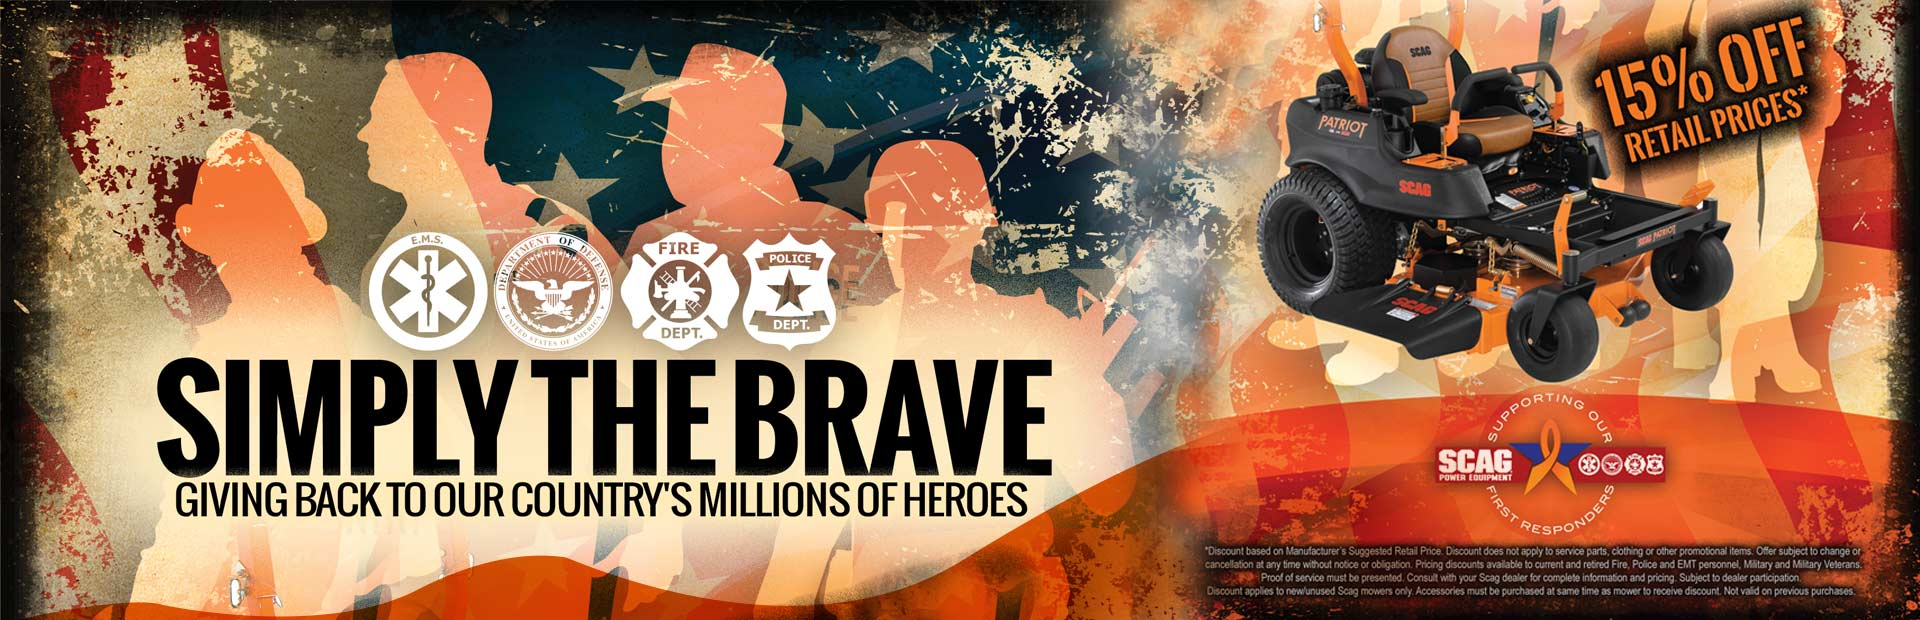 Simply the brave: Giving back to our country's millions of heroes.